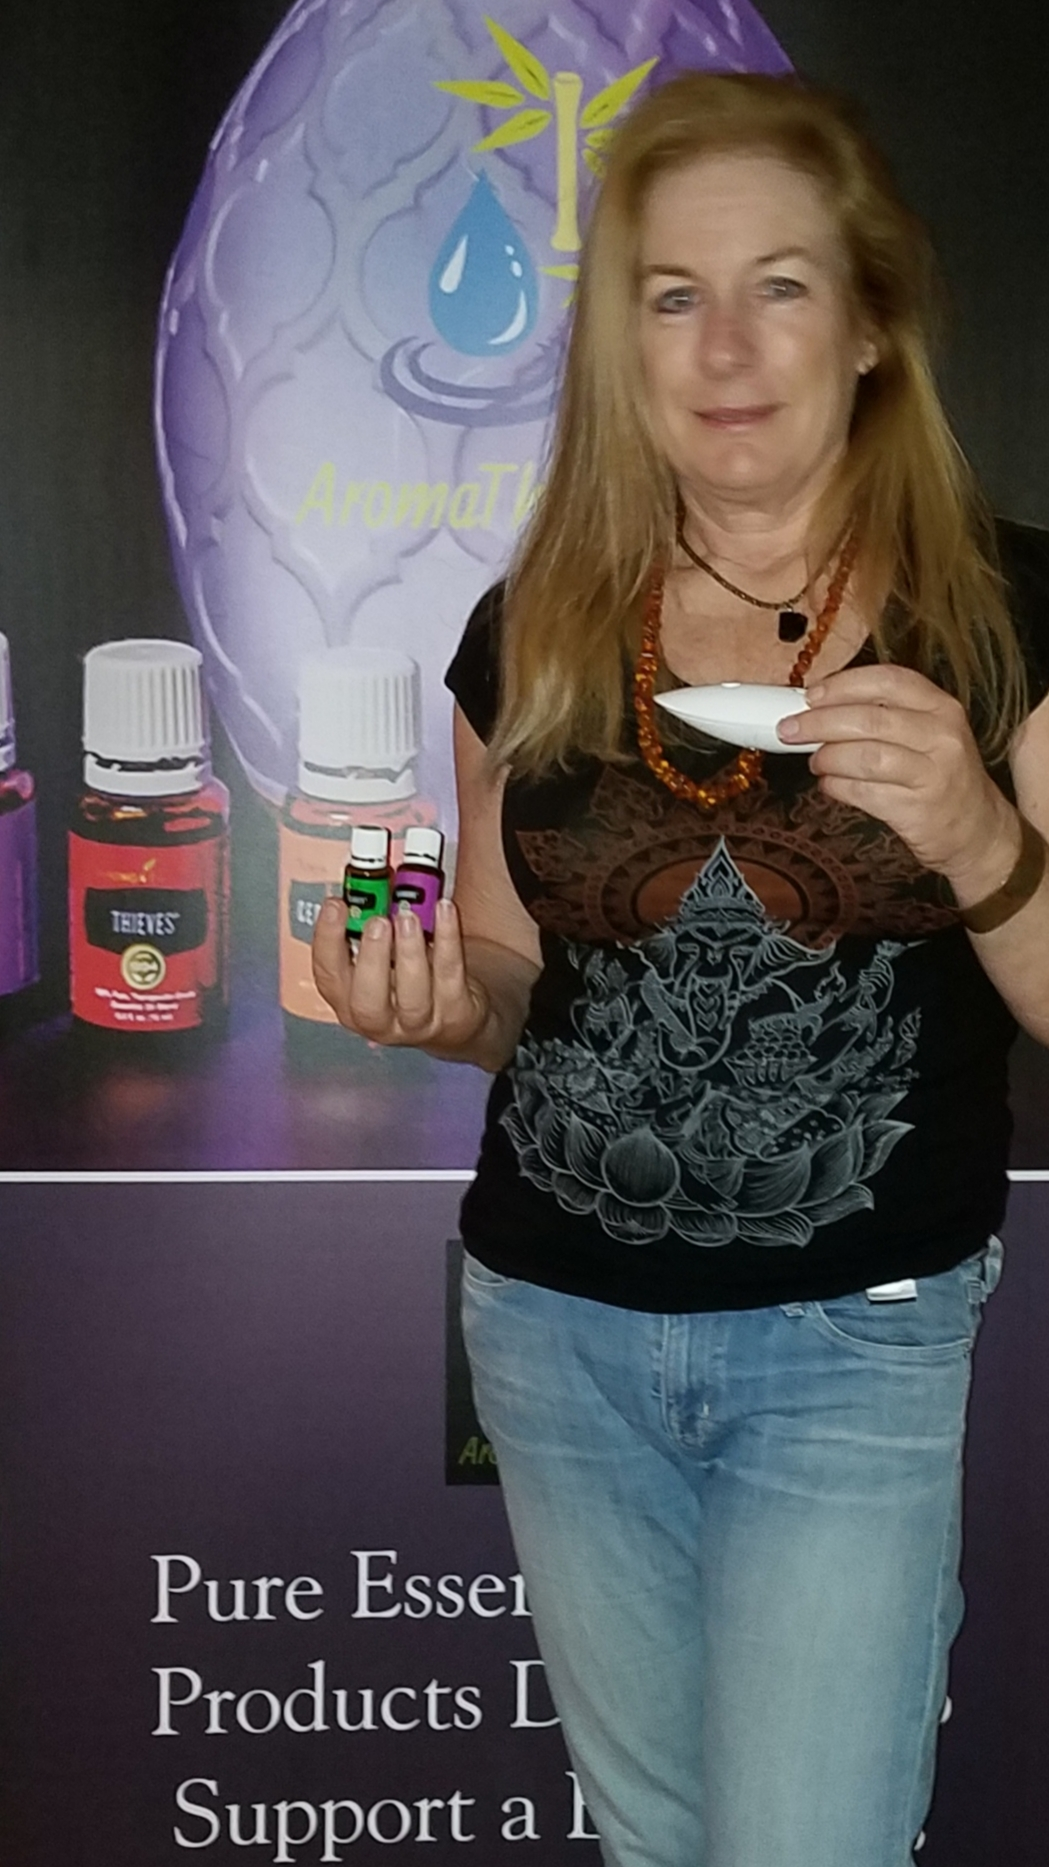 Lisa Osborn of AromaThrive.com will demonstrate how to use essential oils to support a healthy lifestyle title=